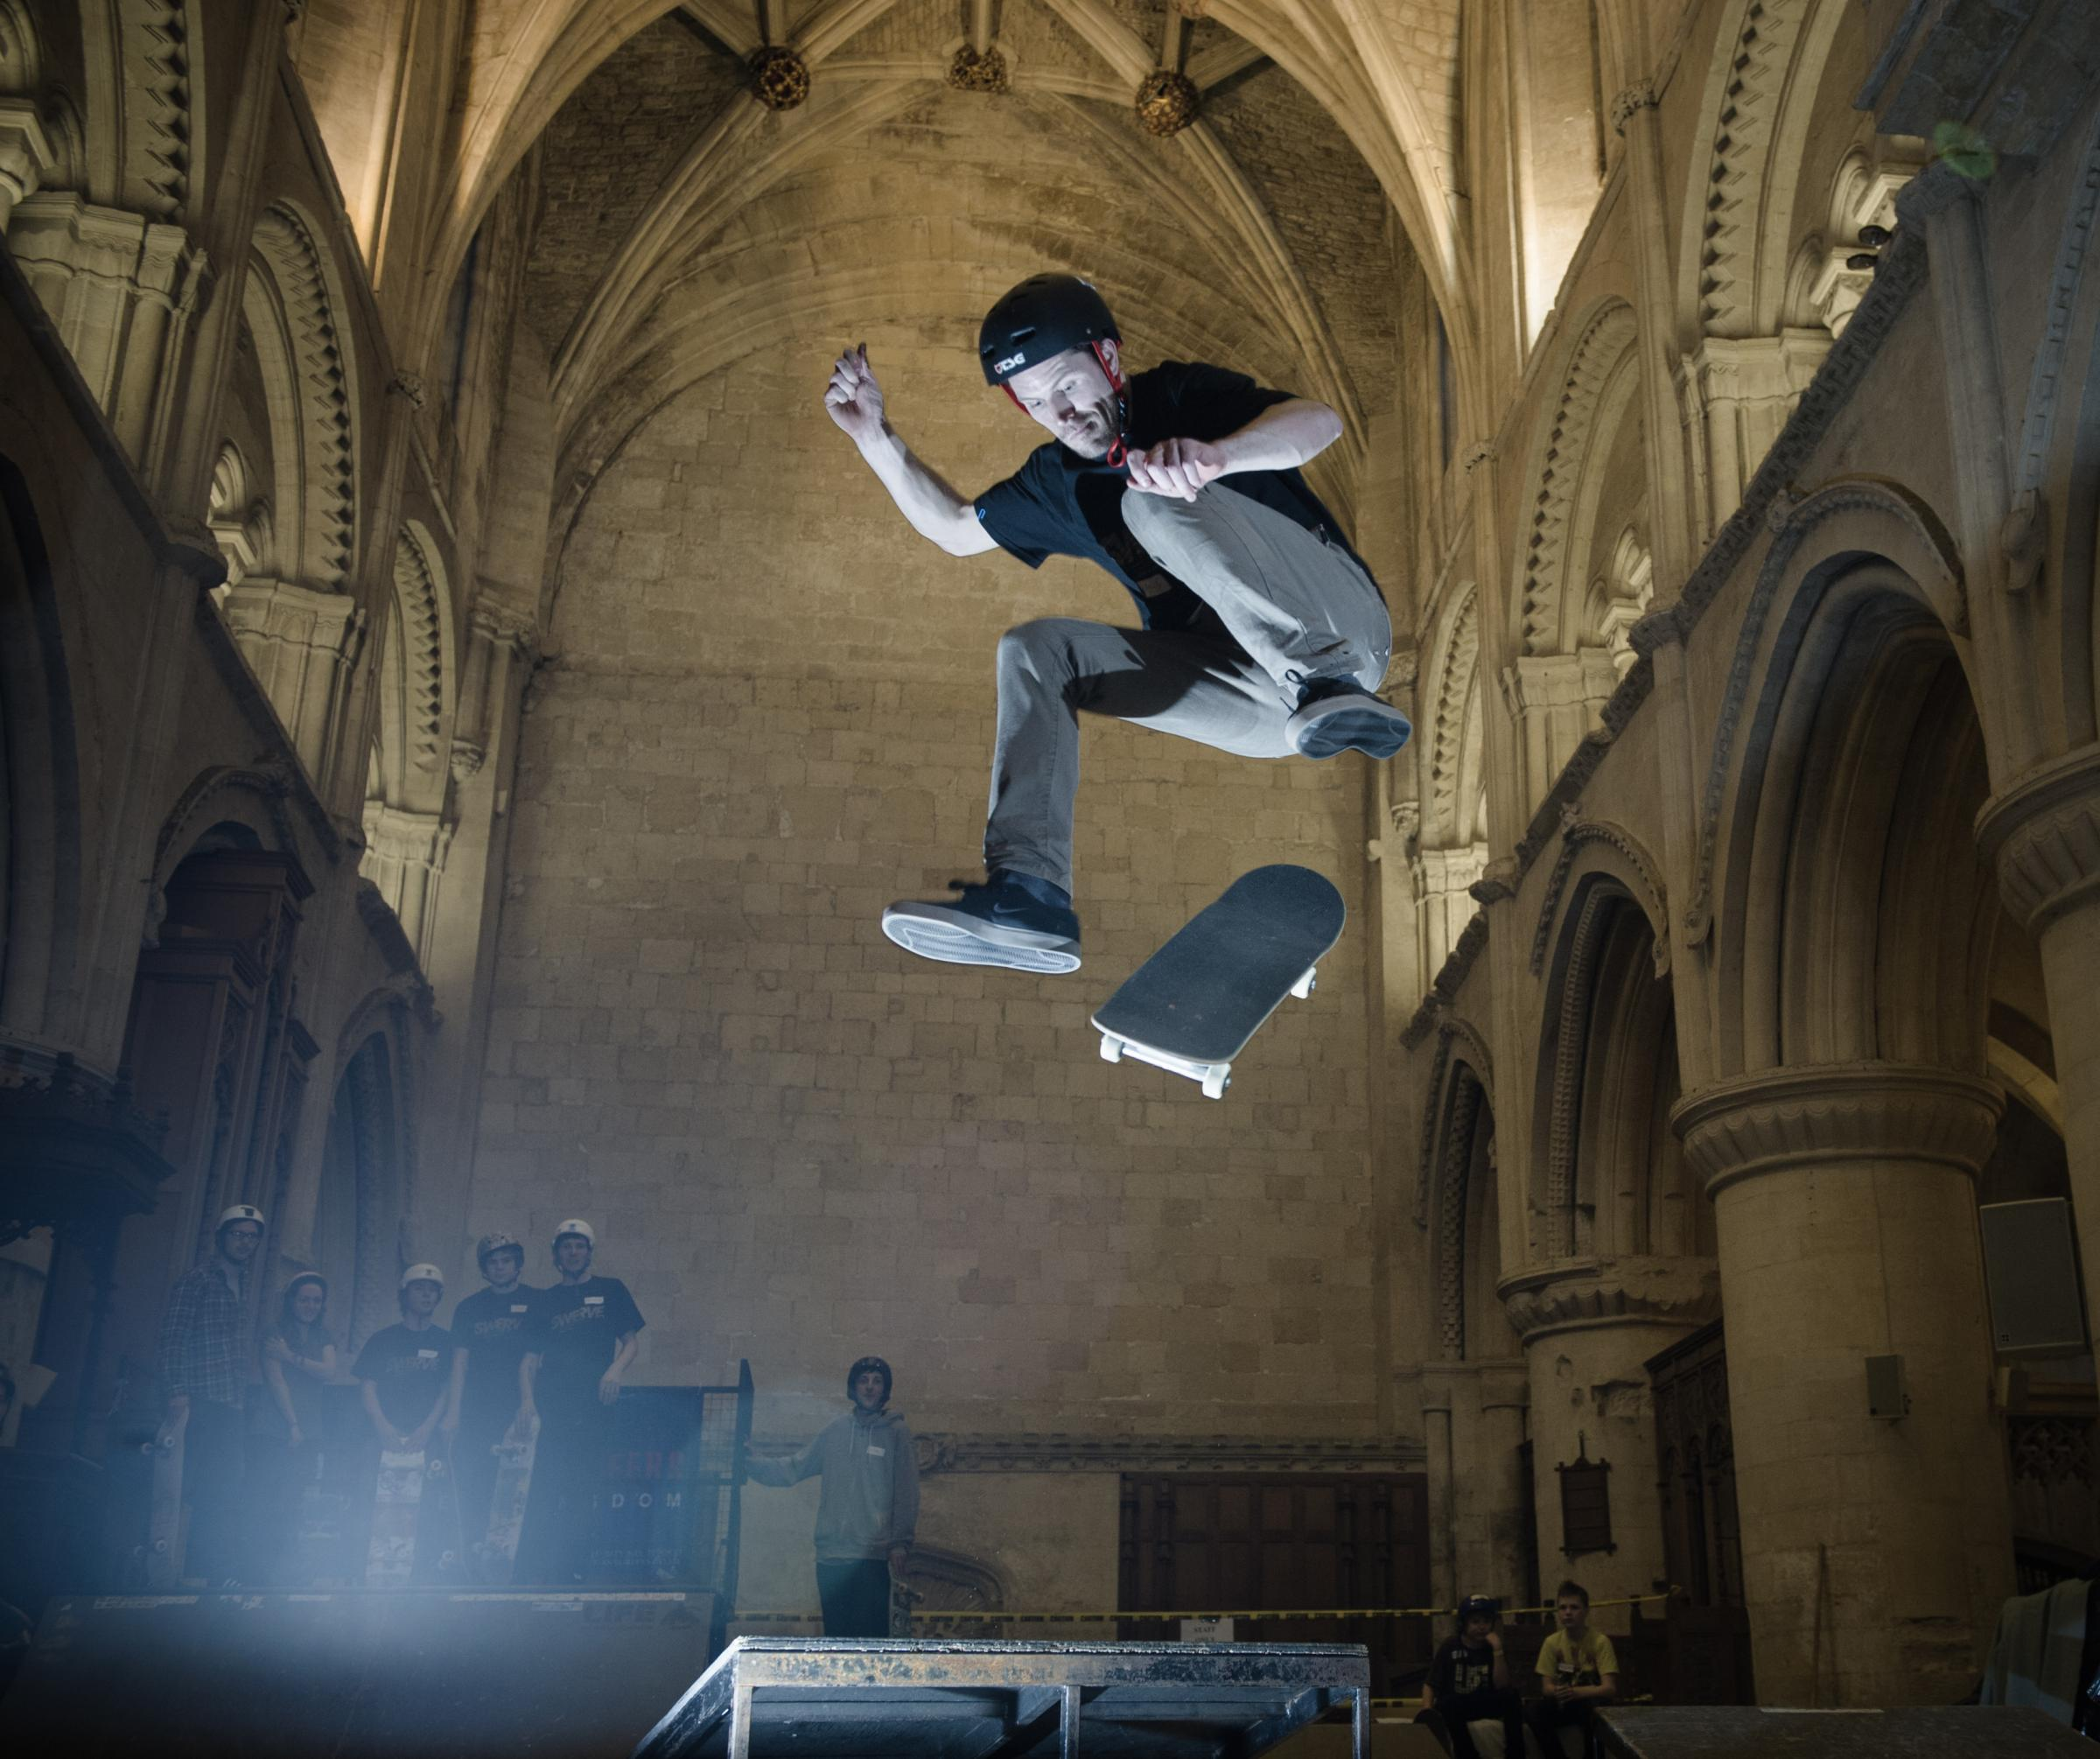 Malmesbury Skate Festival returns to Malmesbury Abbey for 10th Anniversary